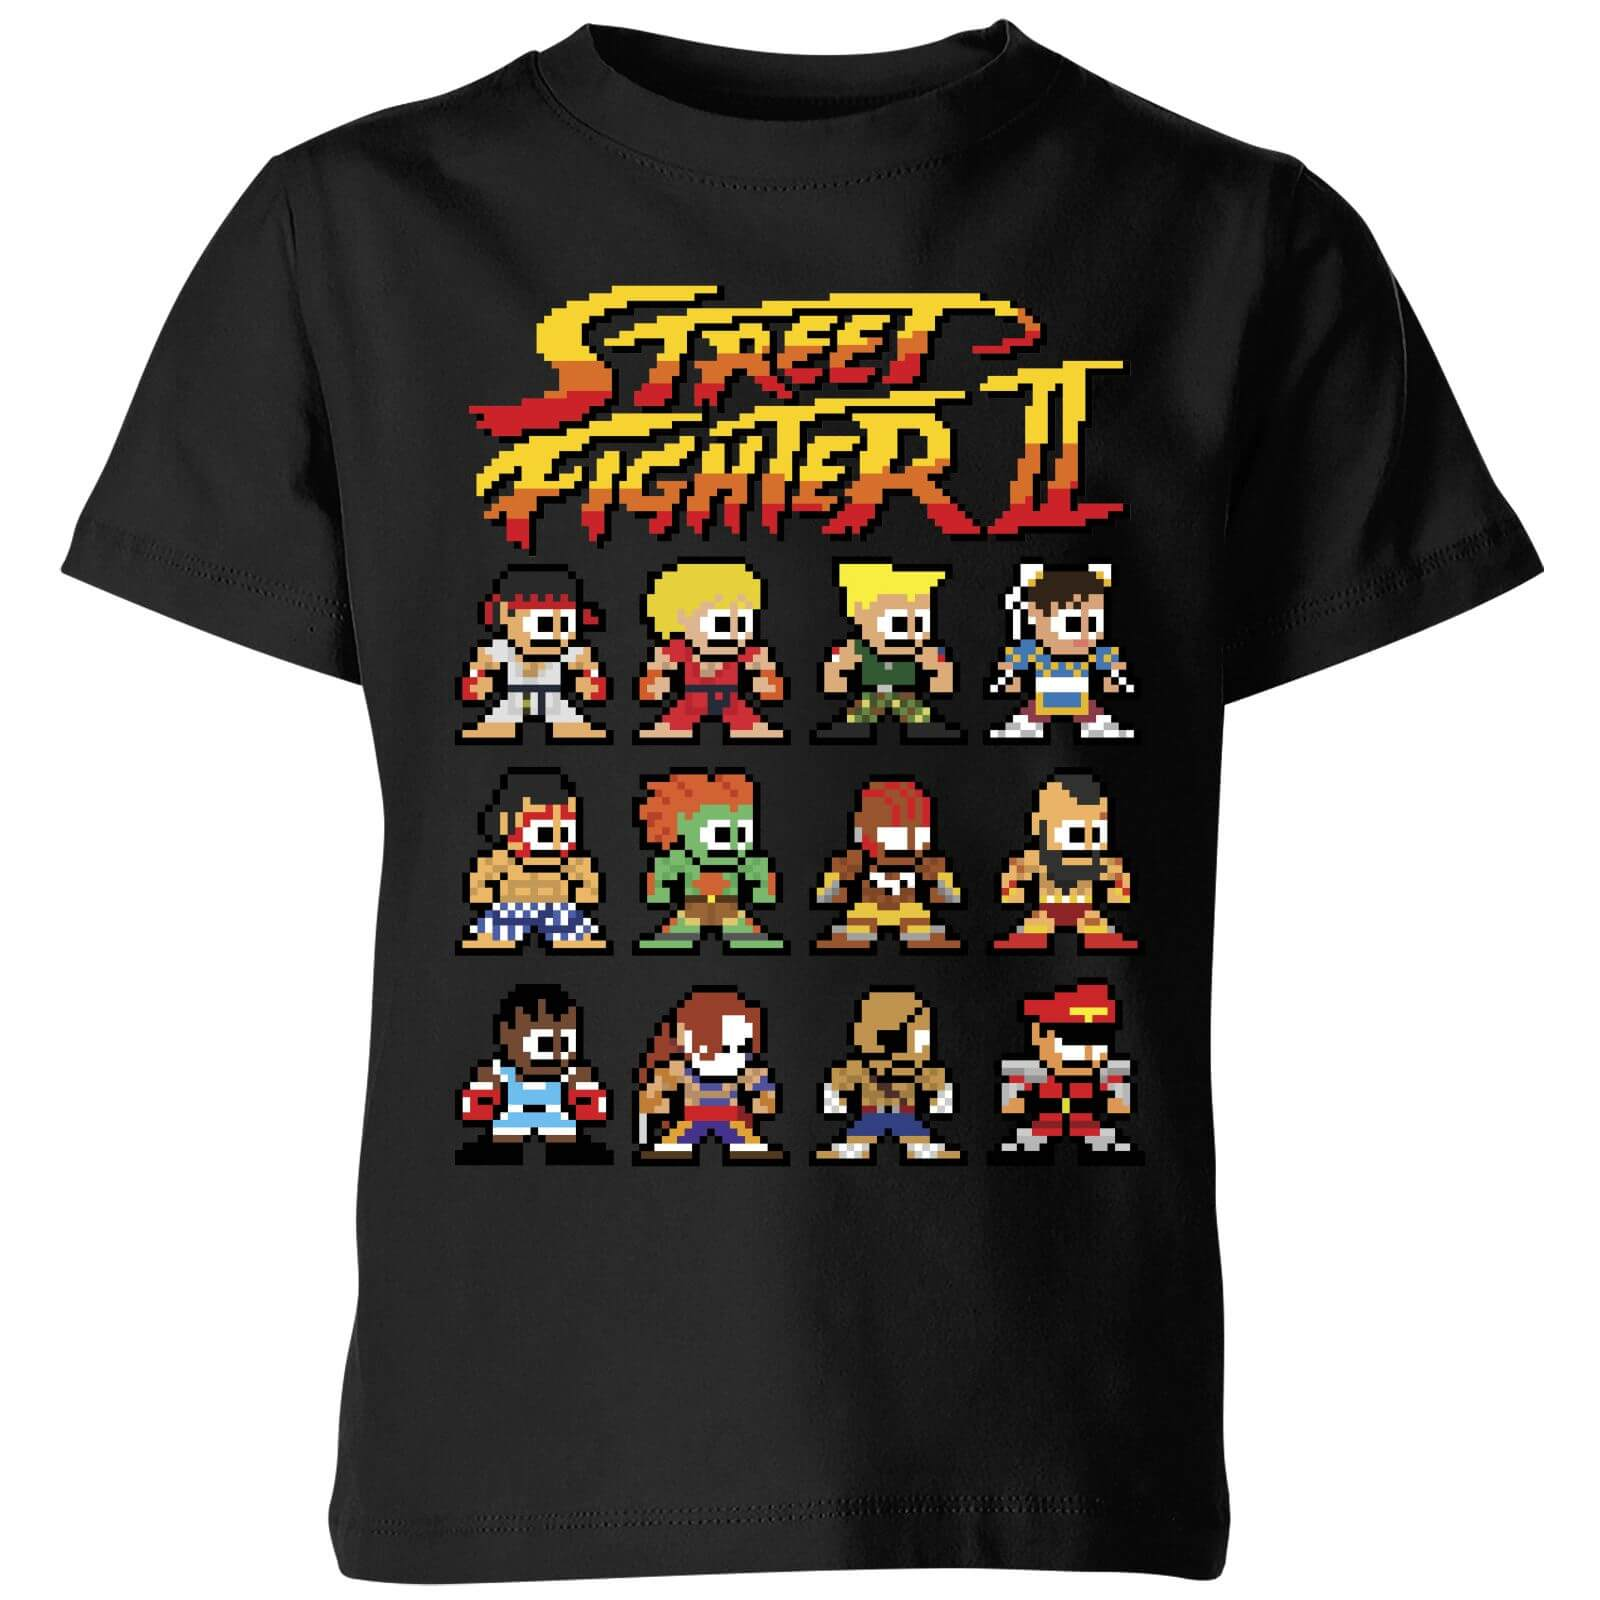 Street Fighter 2 Pixel Characters Kids